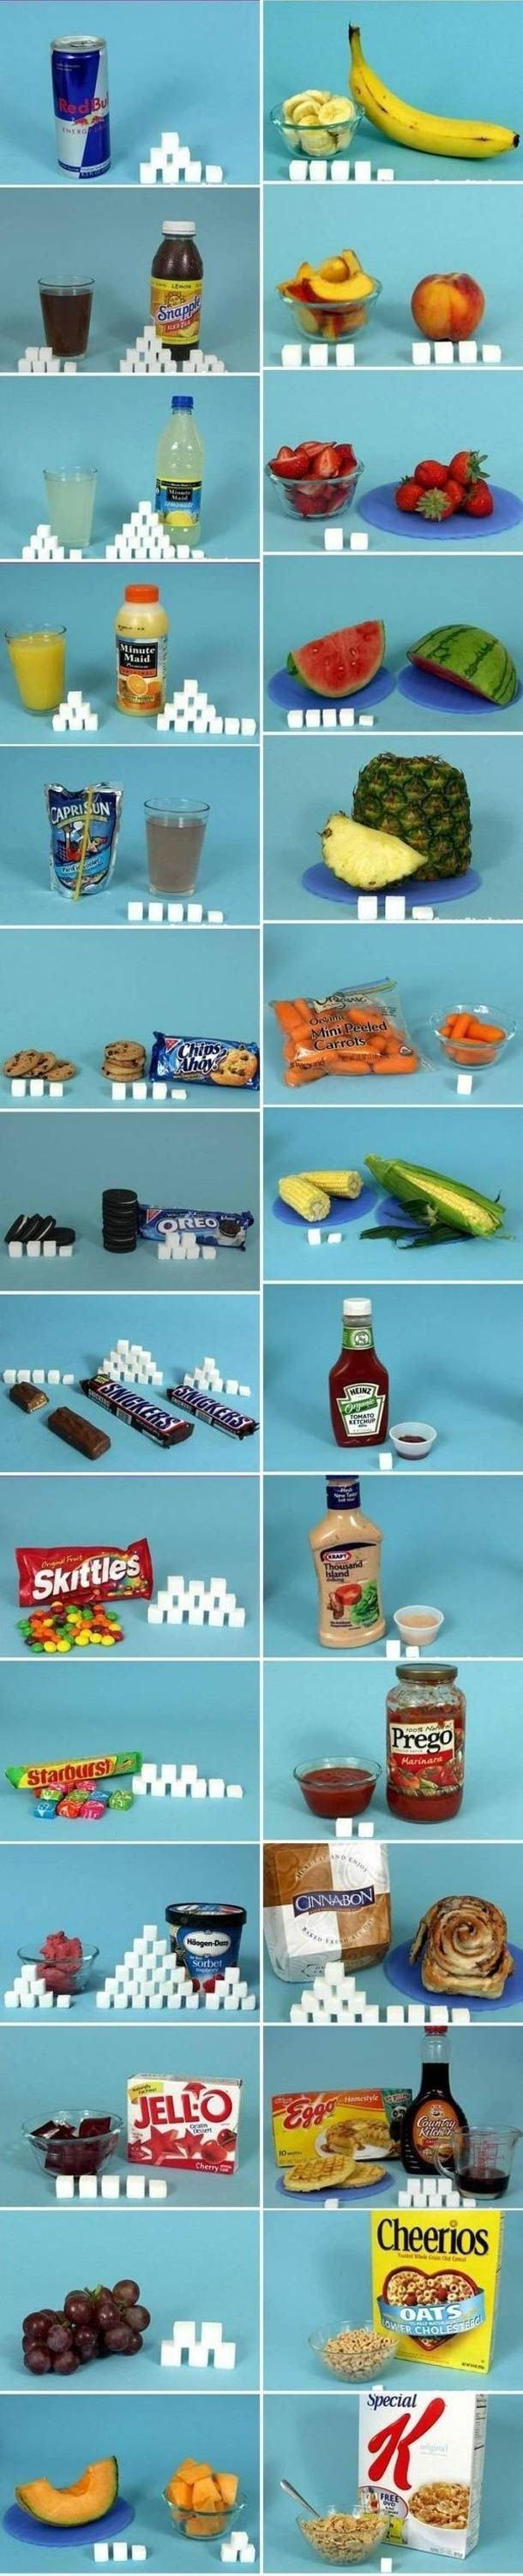 The Amount Of Sugar In Food, Expressed In Sugar Cubes